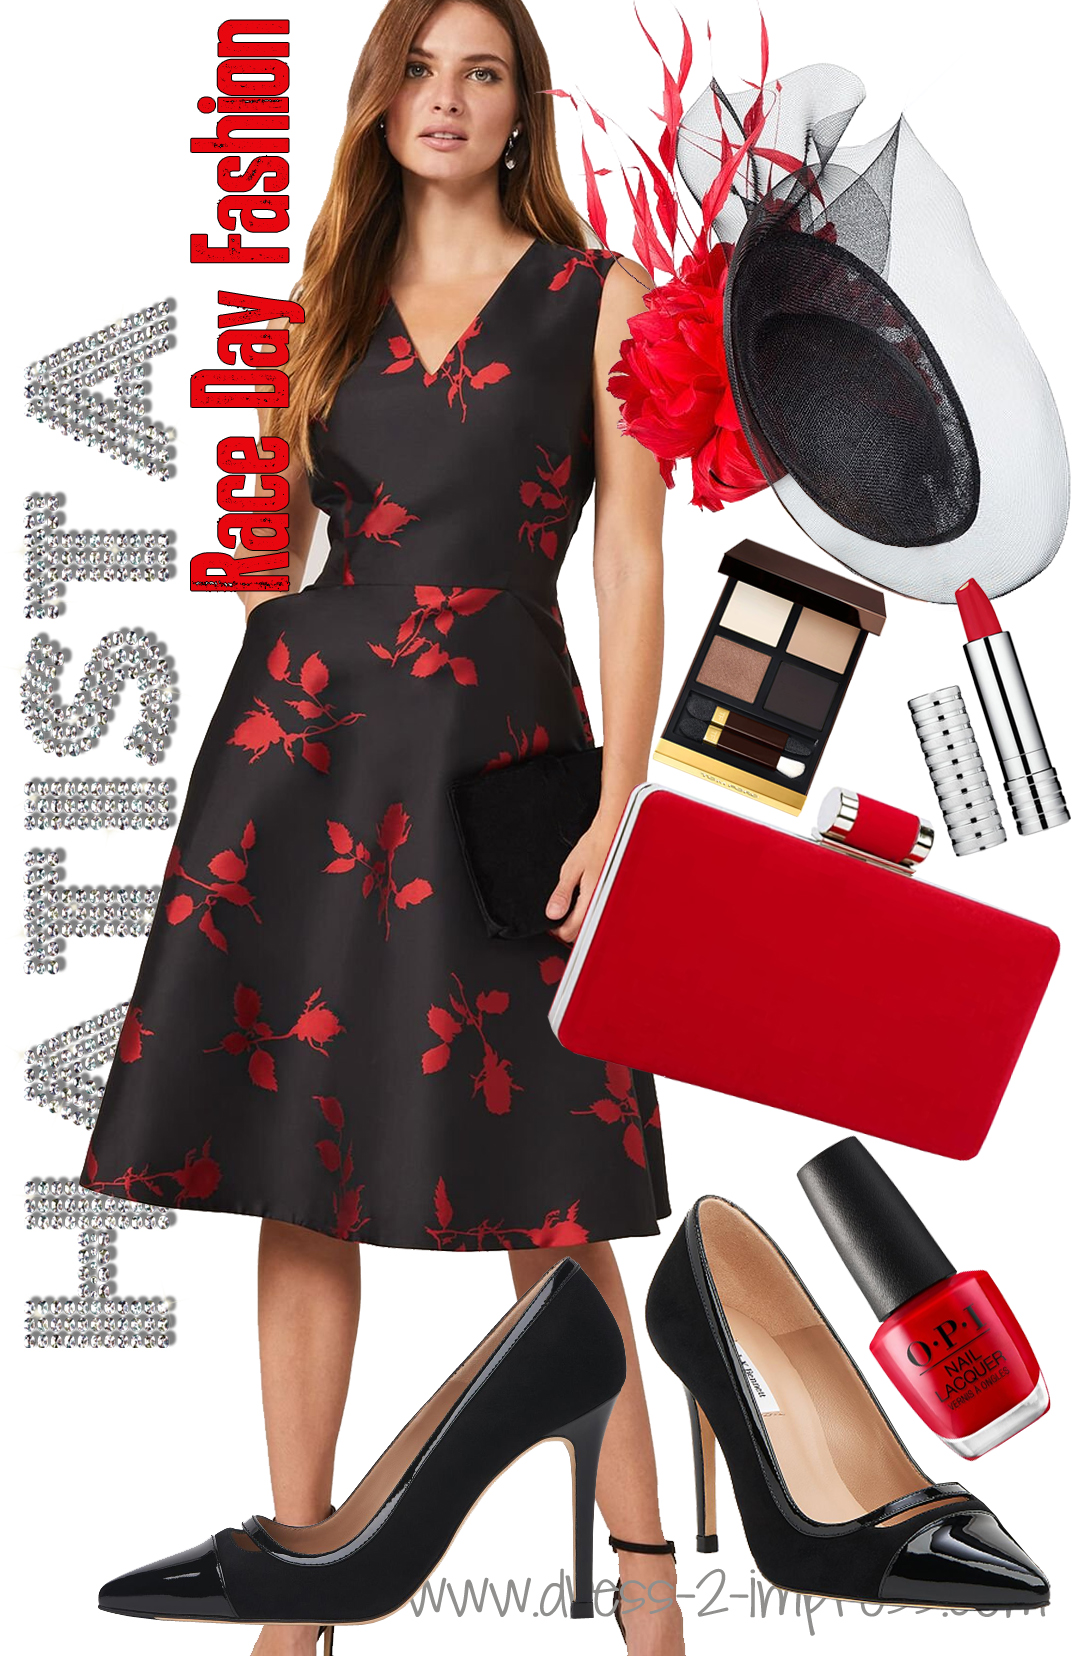 What to wear for Royal Ascot 2021. Royal Ascot Dress code 2021. Black and Red Royal Ascot Outfit 2021. Outfits for Royal Ascot. Dresses for Royal Ascot 2021. What to wear to the Races. Royal Ascot Outfit Inspiration 2021. Floral Dress for Royal Ascot. Hats for Royal Ascot 2021.